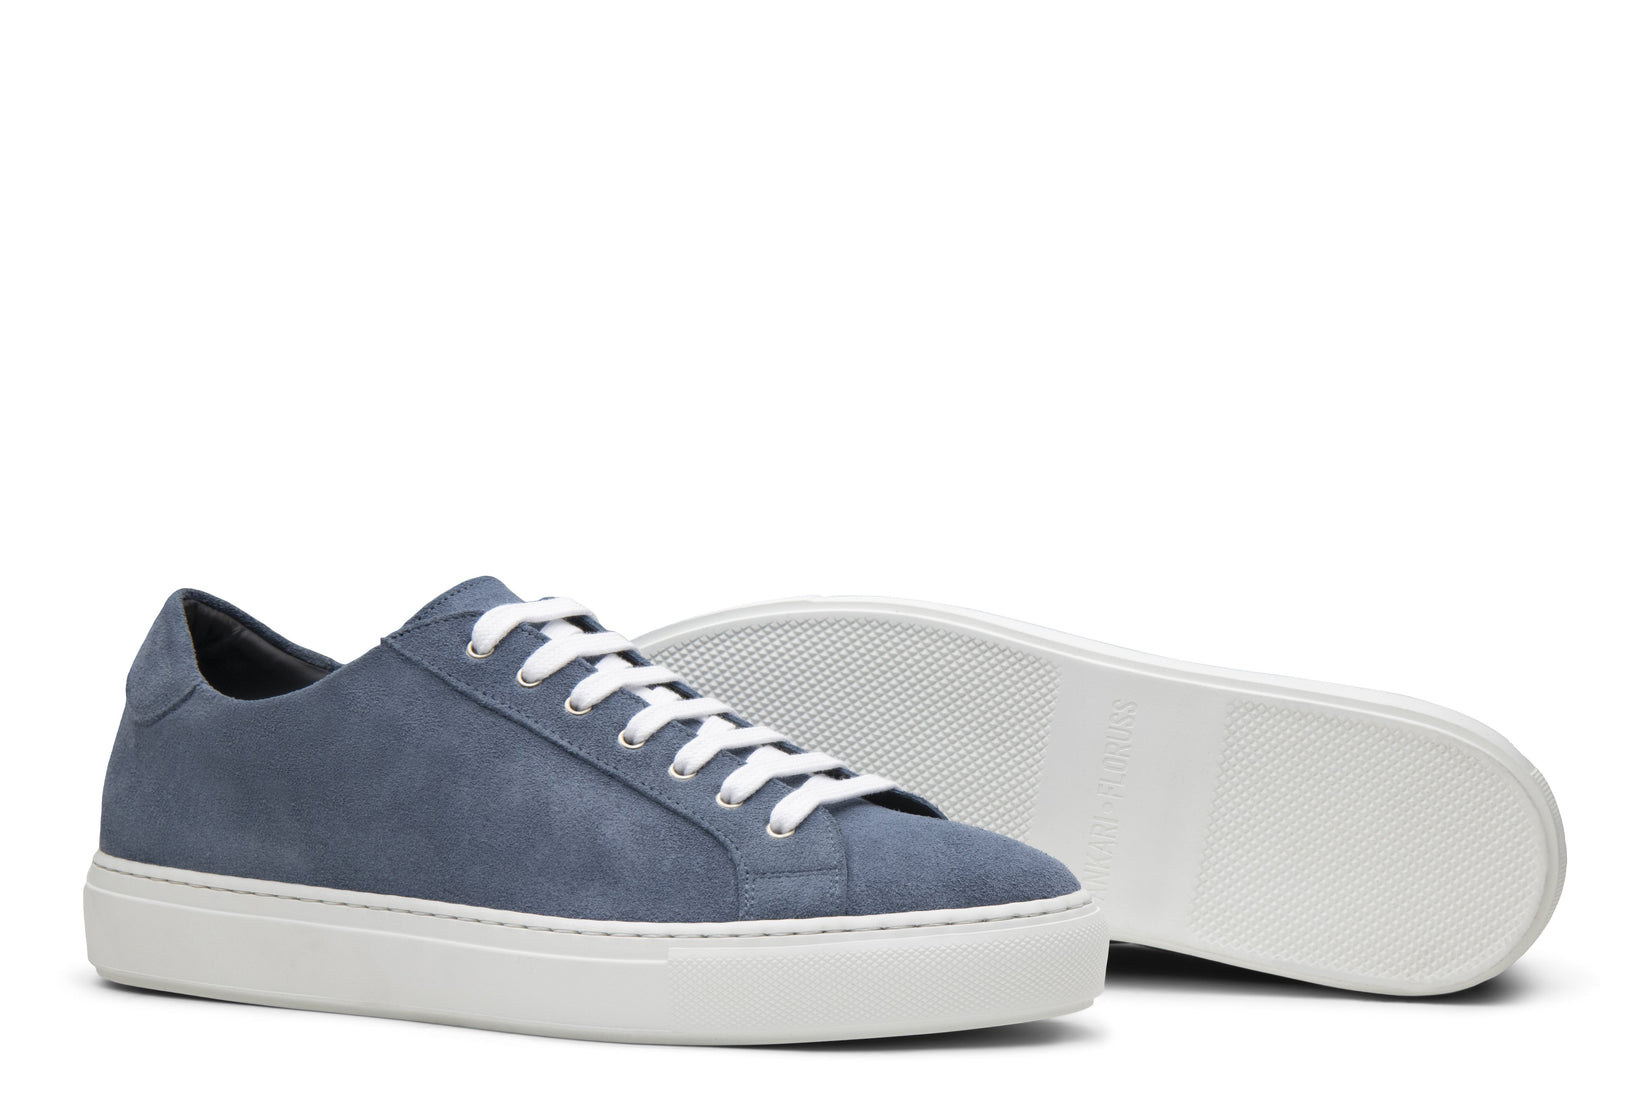 Saturday Lace-Up Sneaker in Sky Blue